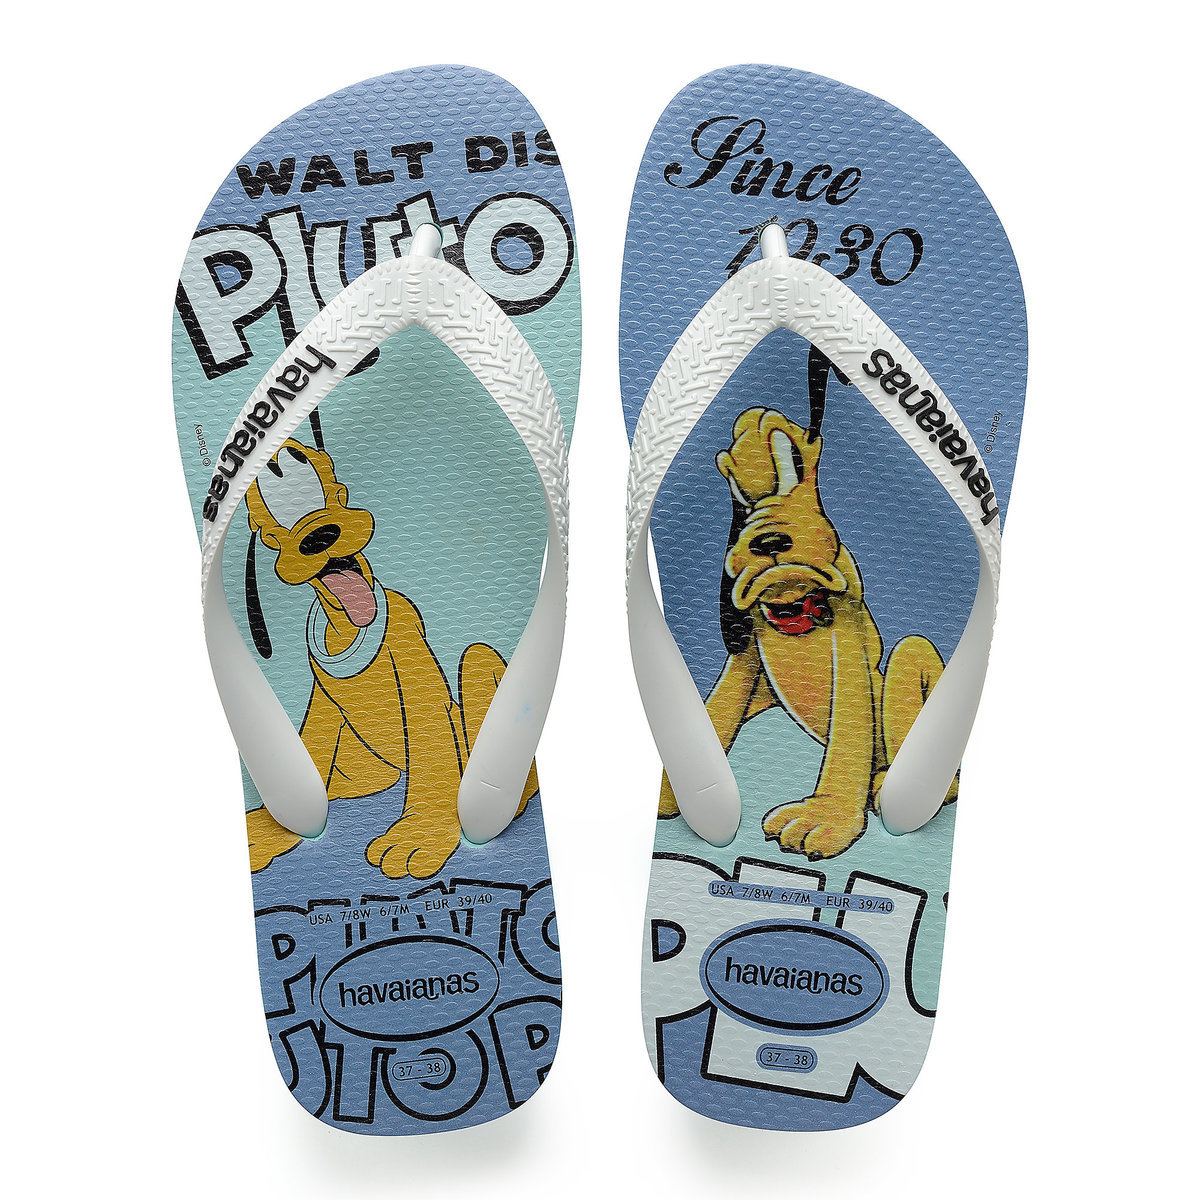 8318134aa Product Image of Pluto Flip Flops for Men by Havaianas   1